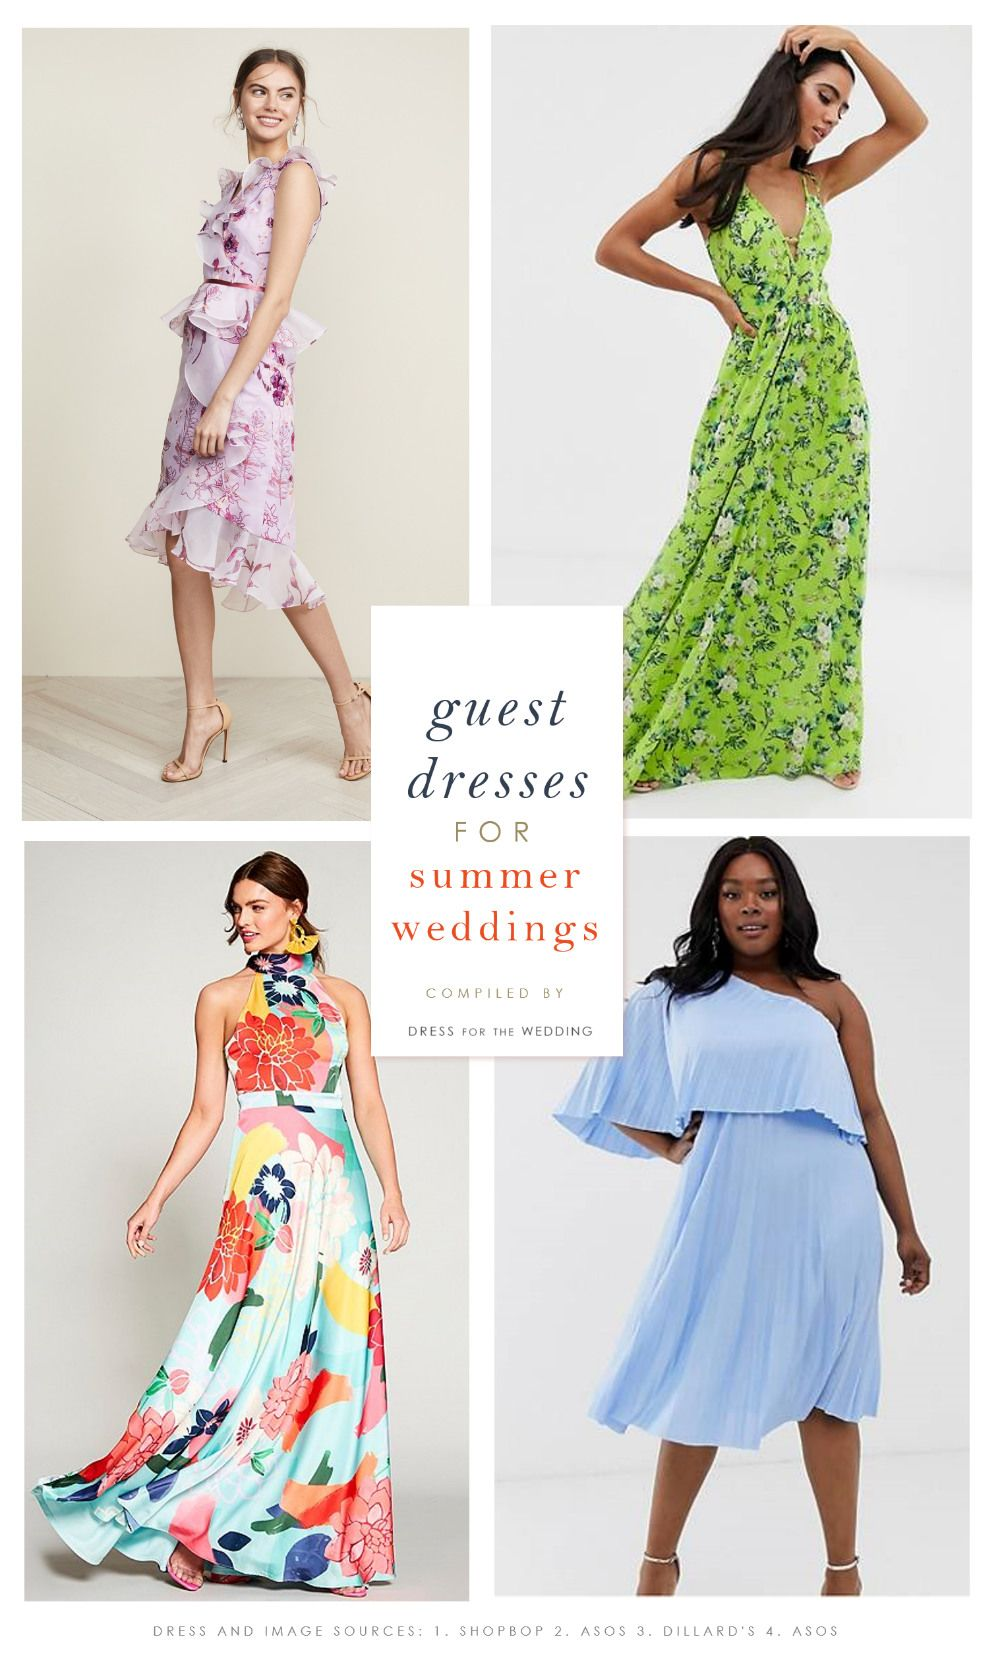 Summer Wedding Guest Dresses Dress For The Wedding Wedding Guest Dress Summer Wedding Guest Dress Wedding Guest Dress Styles